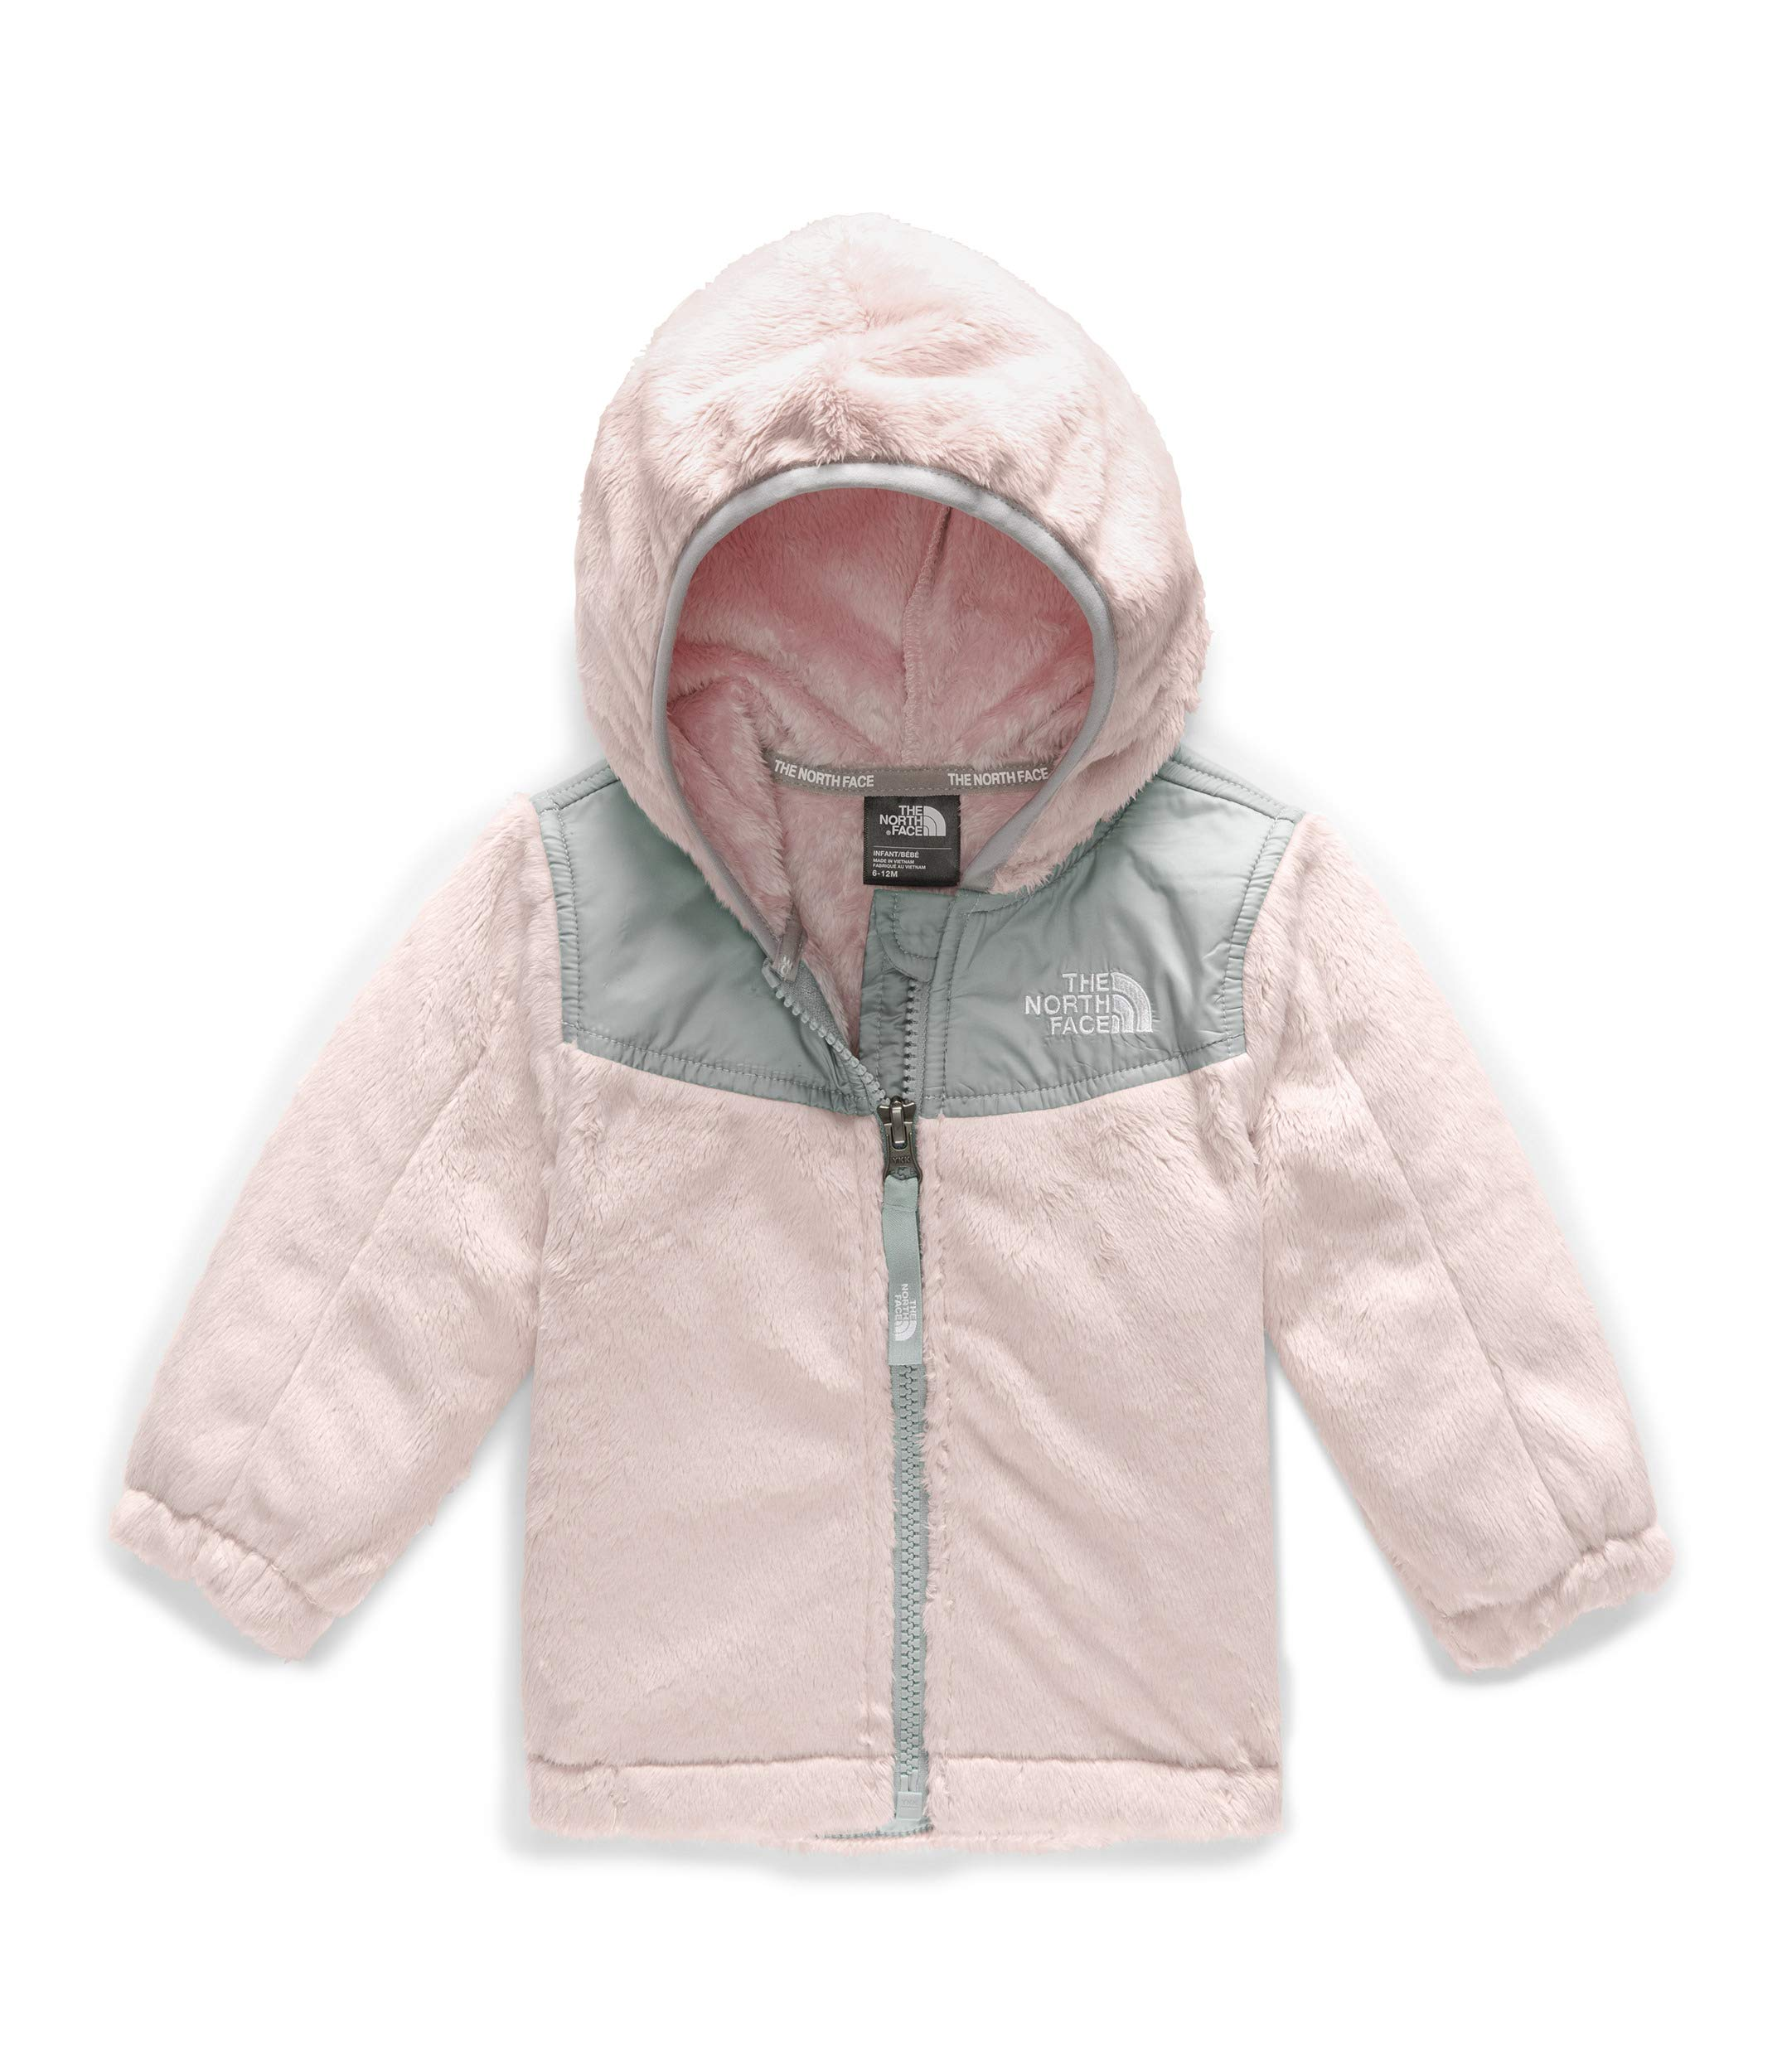 The North Face Infant OSO Hoodie by The North Face